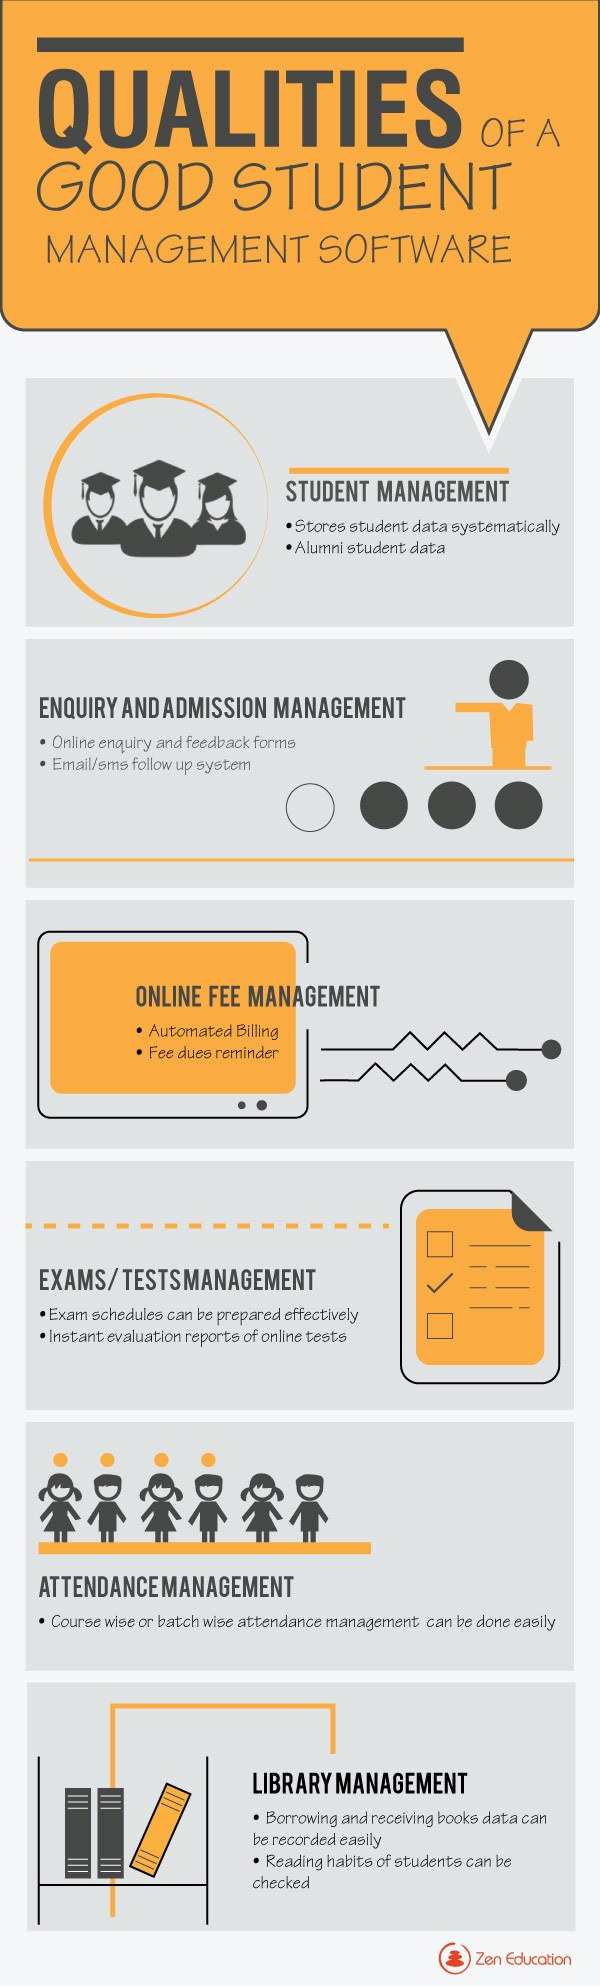 Qualities of a Good Student Management Software Infographic